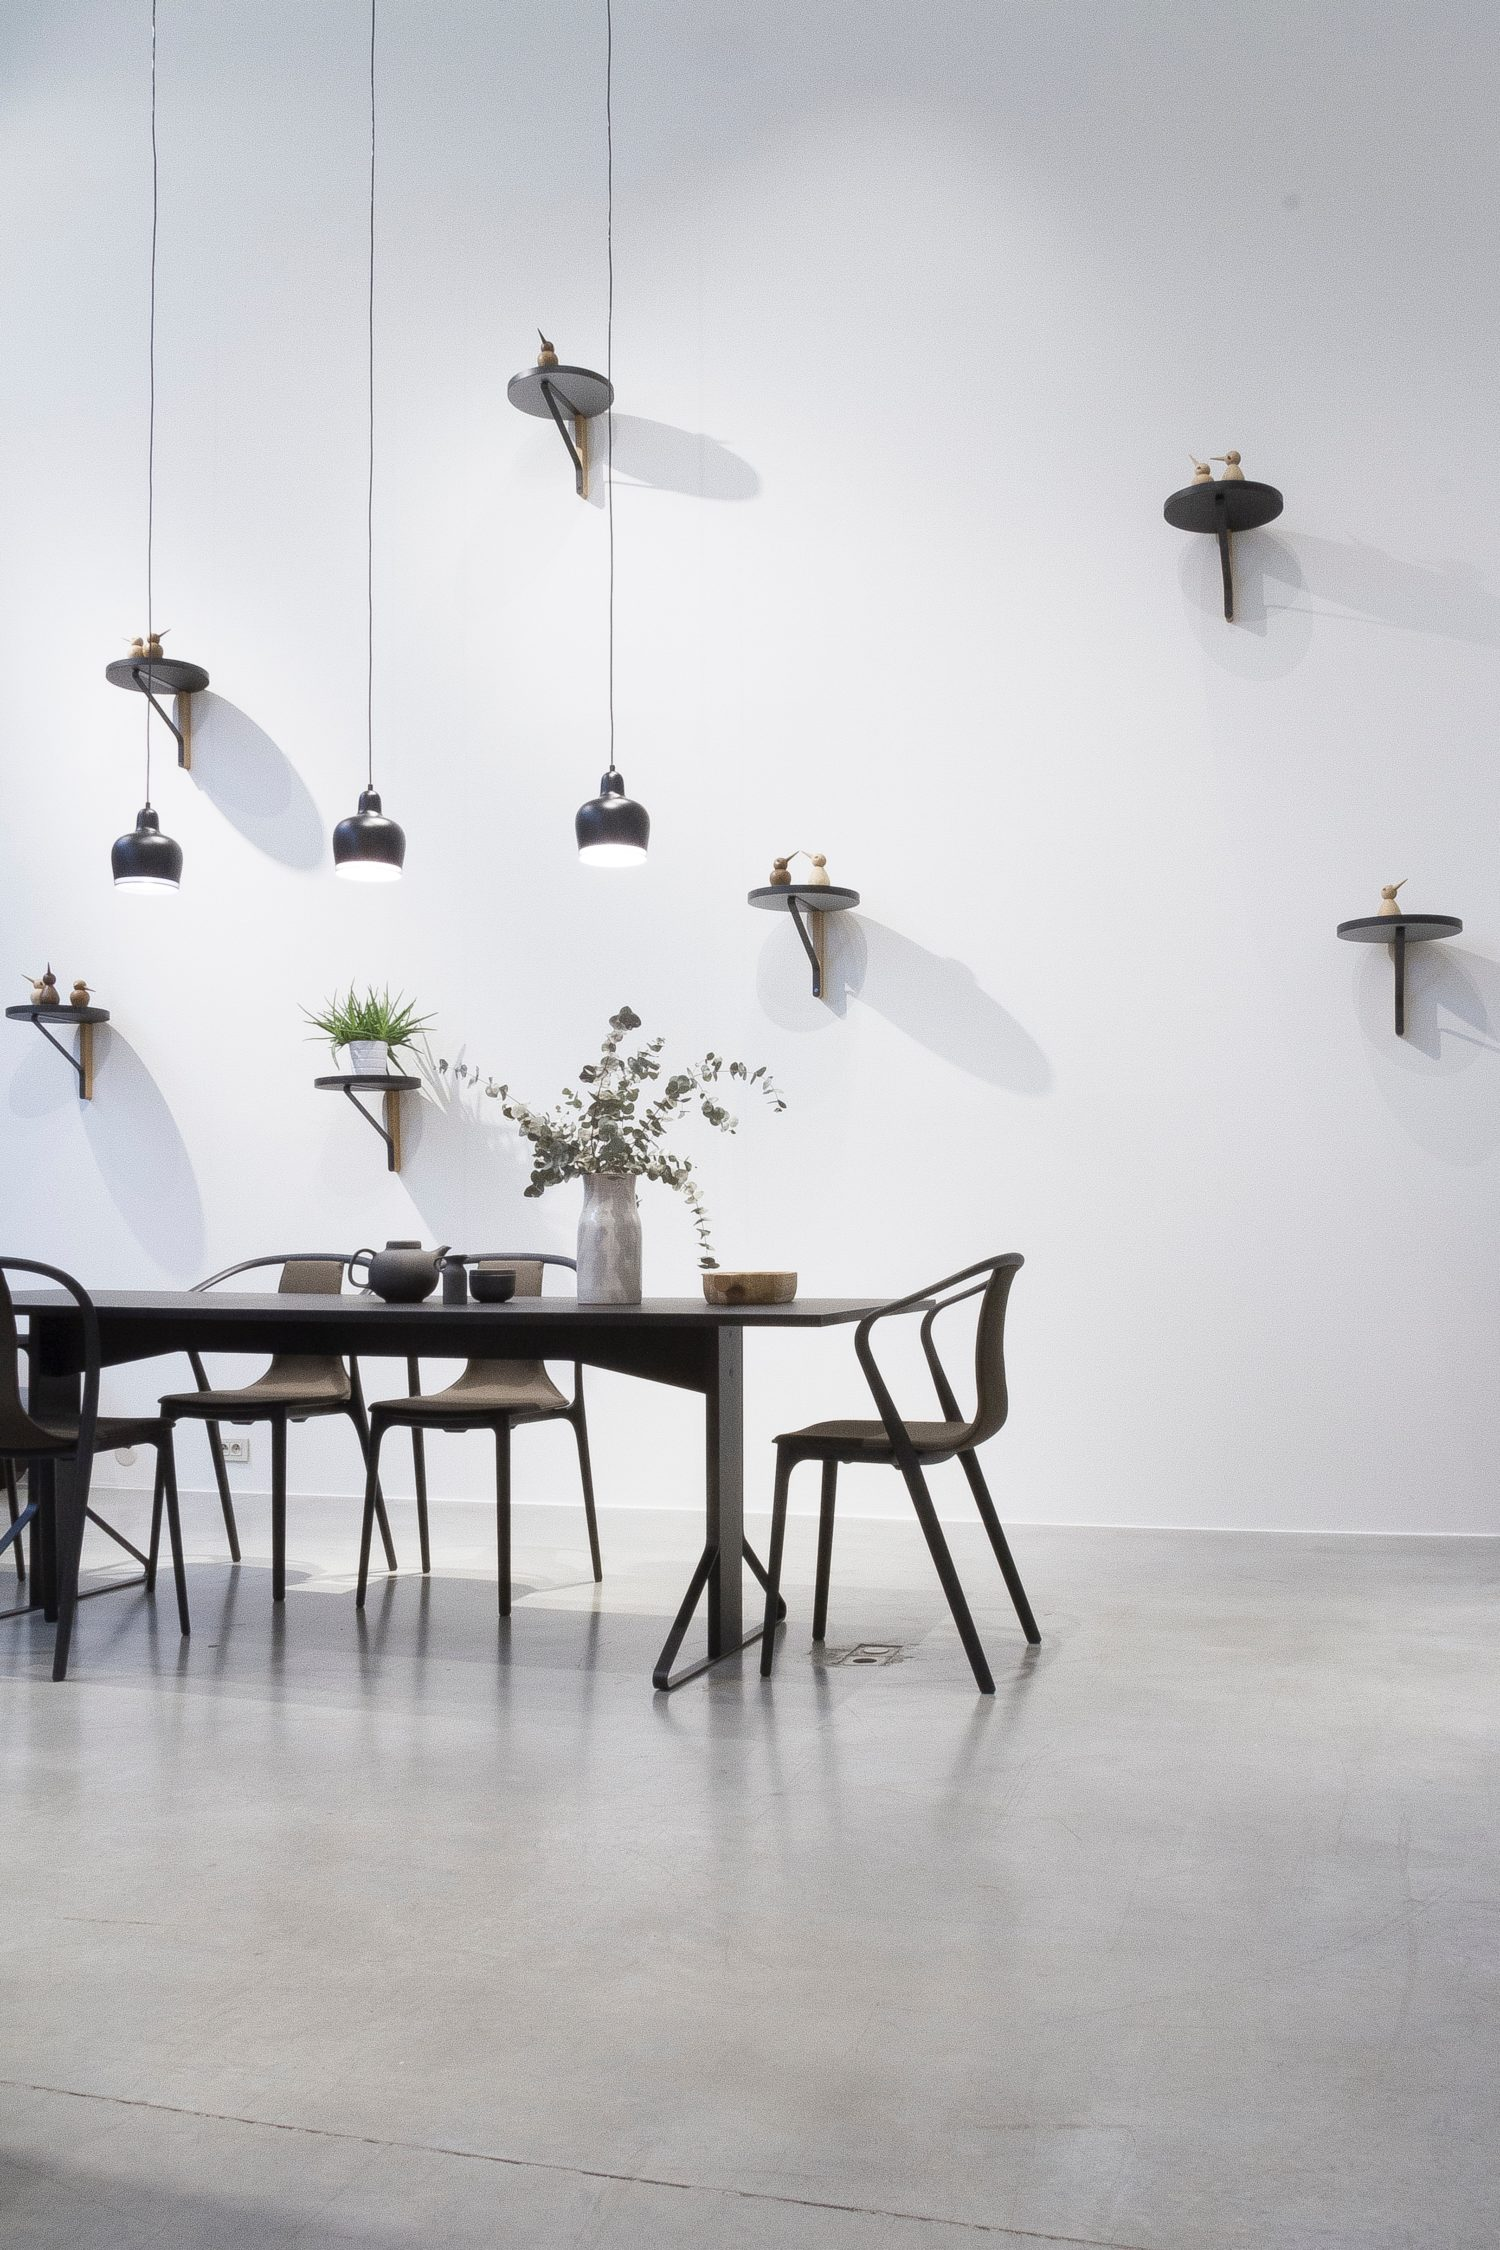 small dining table on concrete floor and hanging lights